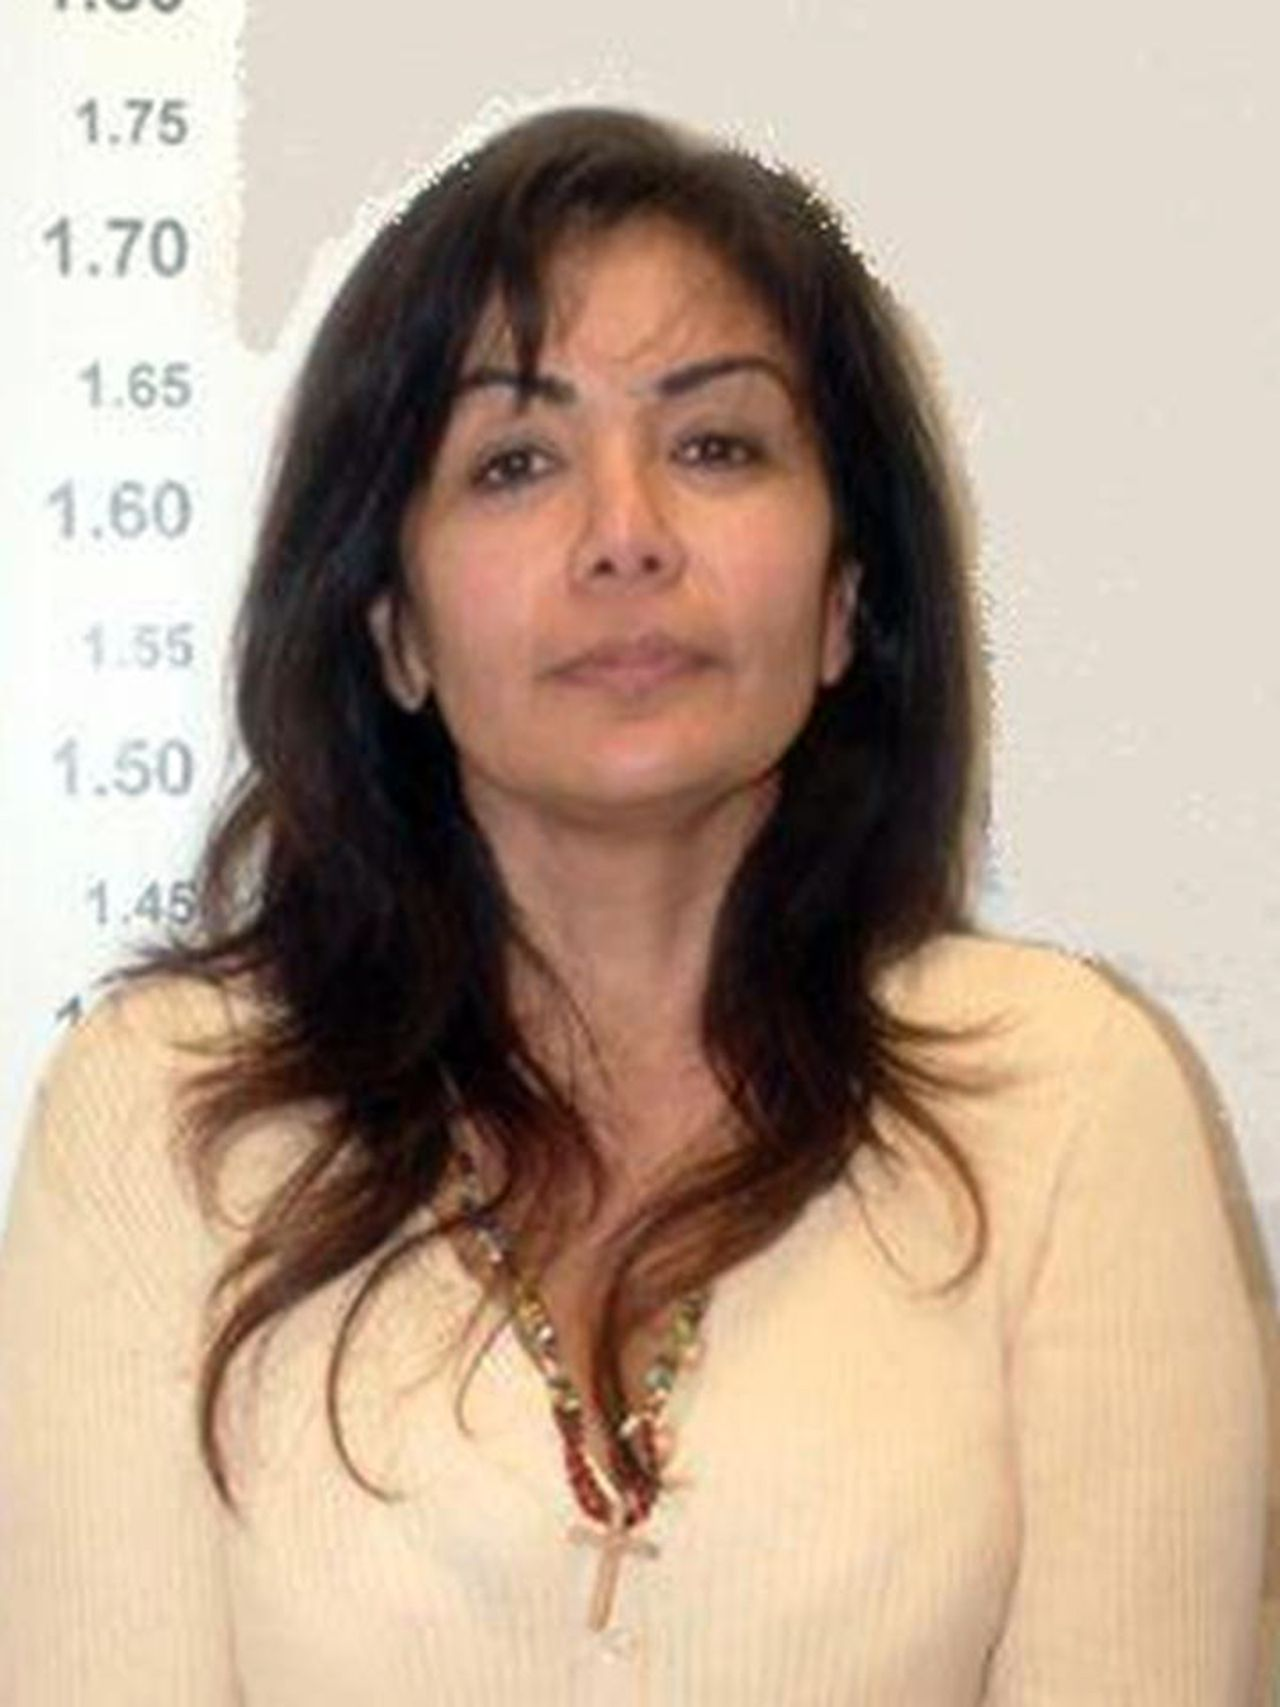 """In this photo released by Mexico's Federal Secretary of Public Safety, Sandra Avila Beltran, also known as the """"Queen of the Pacific,"""" smiles for a police mug shot on the day of her arrest in Mexico City, Sept. 28, 2007. The raven-haired 46-year-old worked her way to the top of Mexico's male-dominated illegal drug industry, prompting U.S. officials to issue a warrant for her arrest.(AP Photo/Mexico's Federal Secretary of Public Safety) ** NO SALES ** NO ARCHIVE **"""